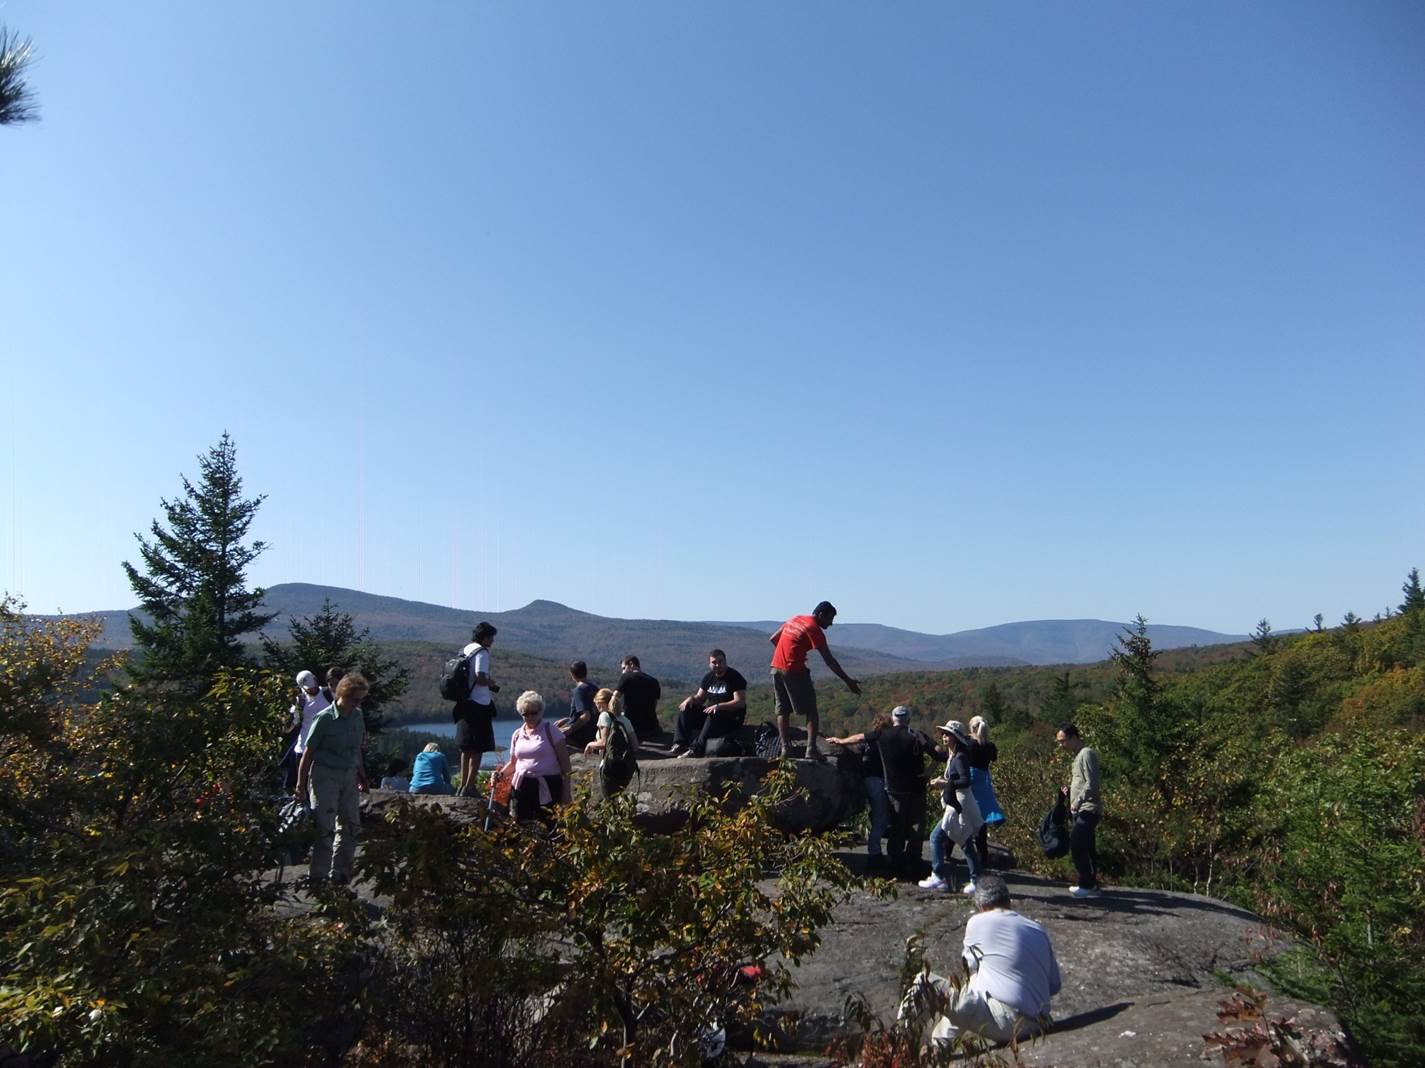 Guided Hikes on the Hudson River School Art Trail